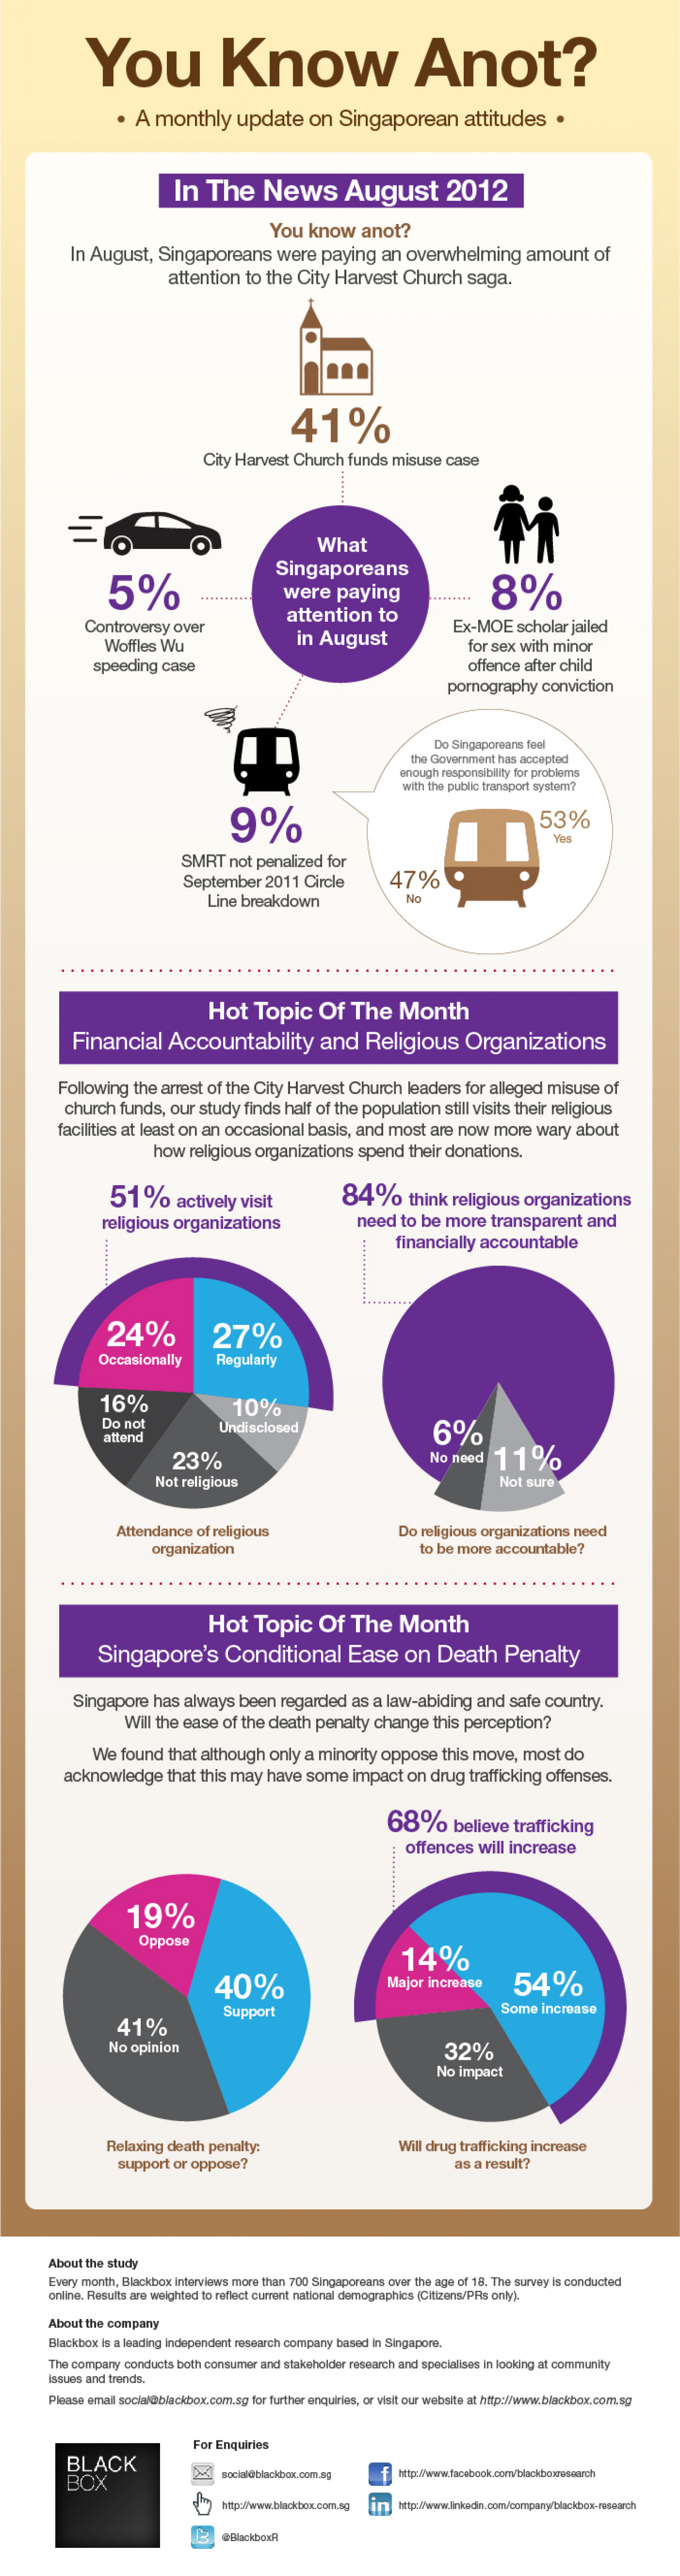 You Know Anot? Singaporean Sentiments, Aug 2012 Infographic